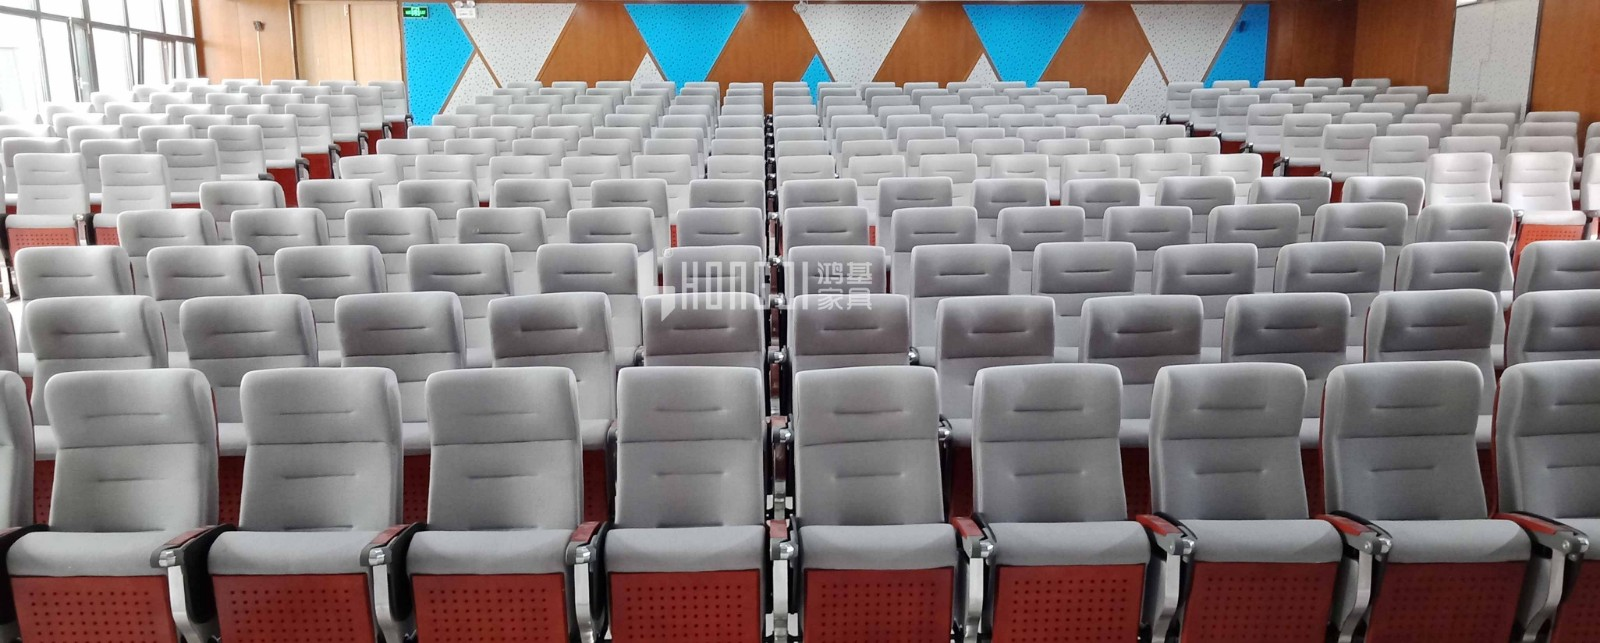 HONGJI outstanding durability 2 seat theater seating factory for sale-12